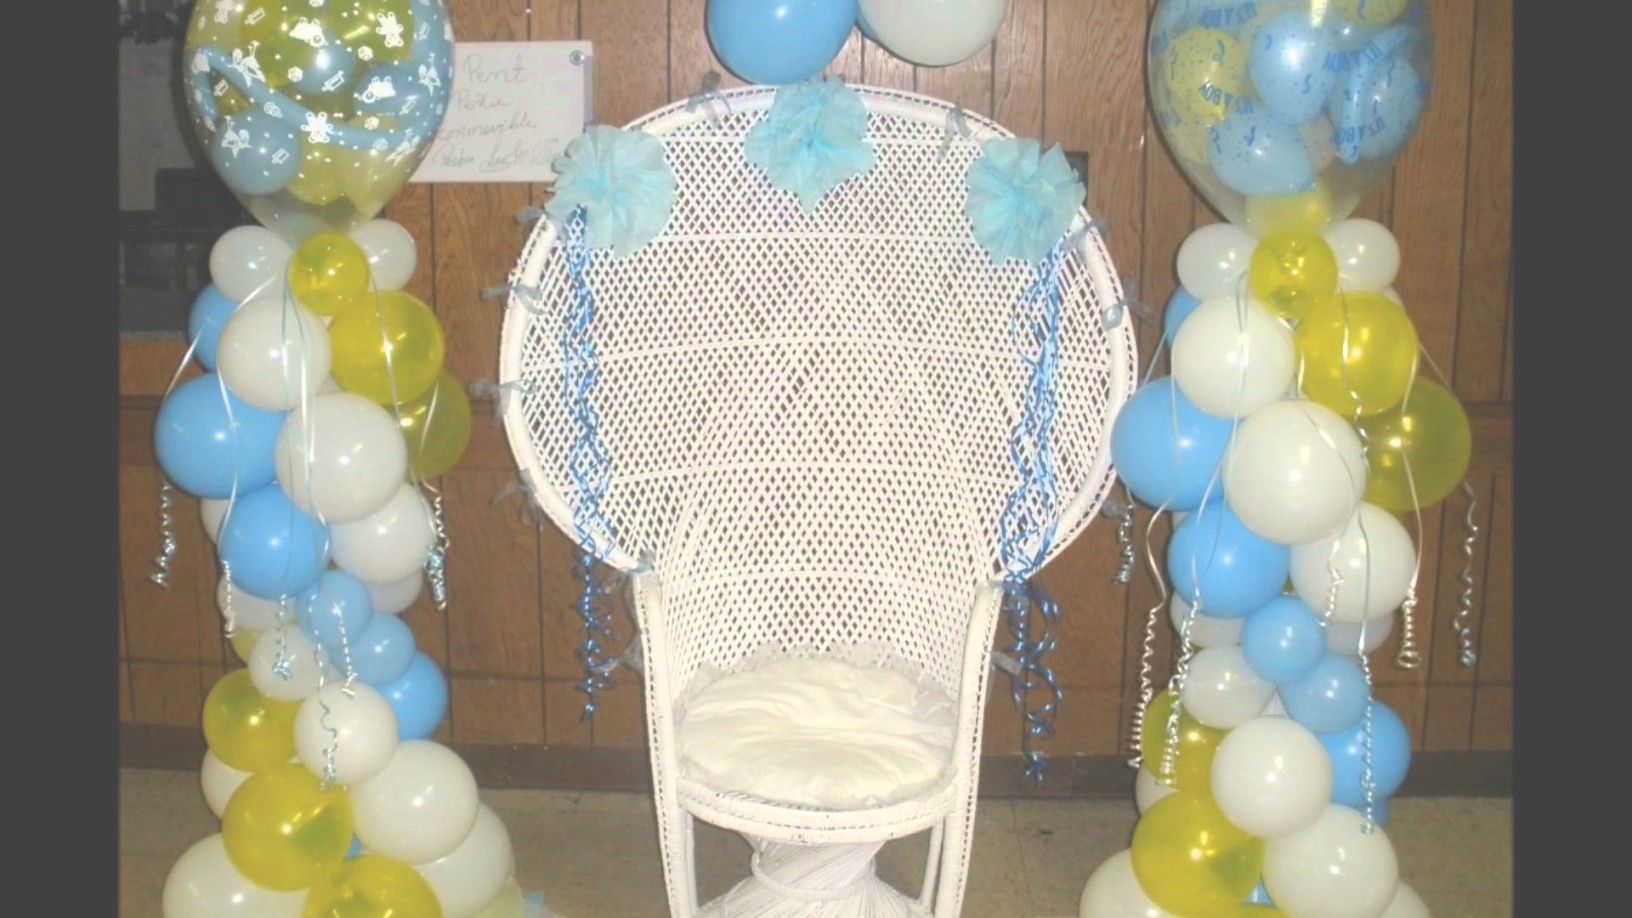 Modular Stunning Design Sillas Para Baby Shower Fabulous Decoracion Youtube within New Sillas Para Baby Shower